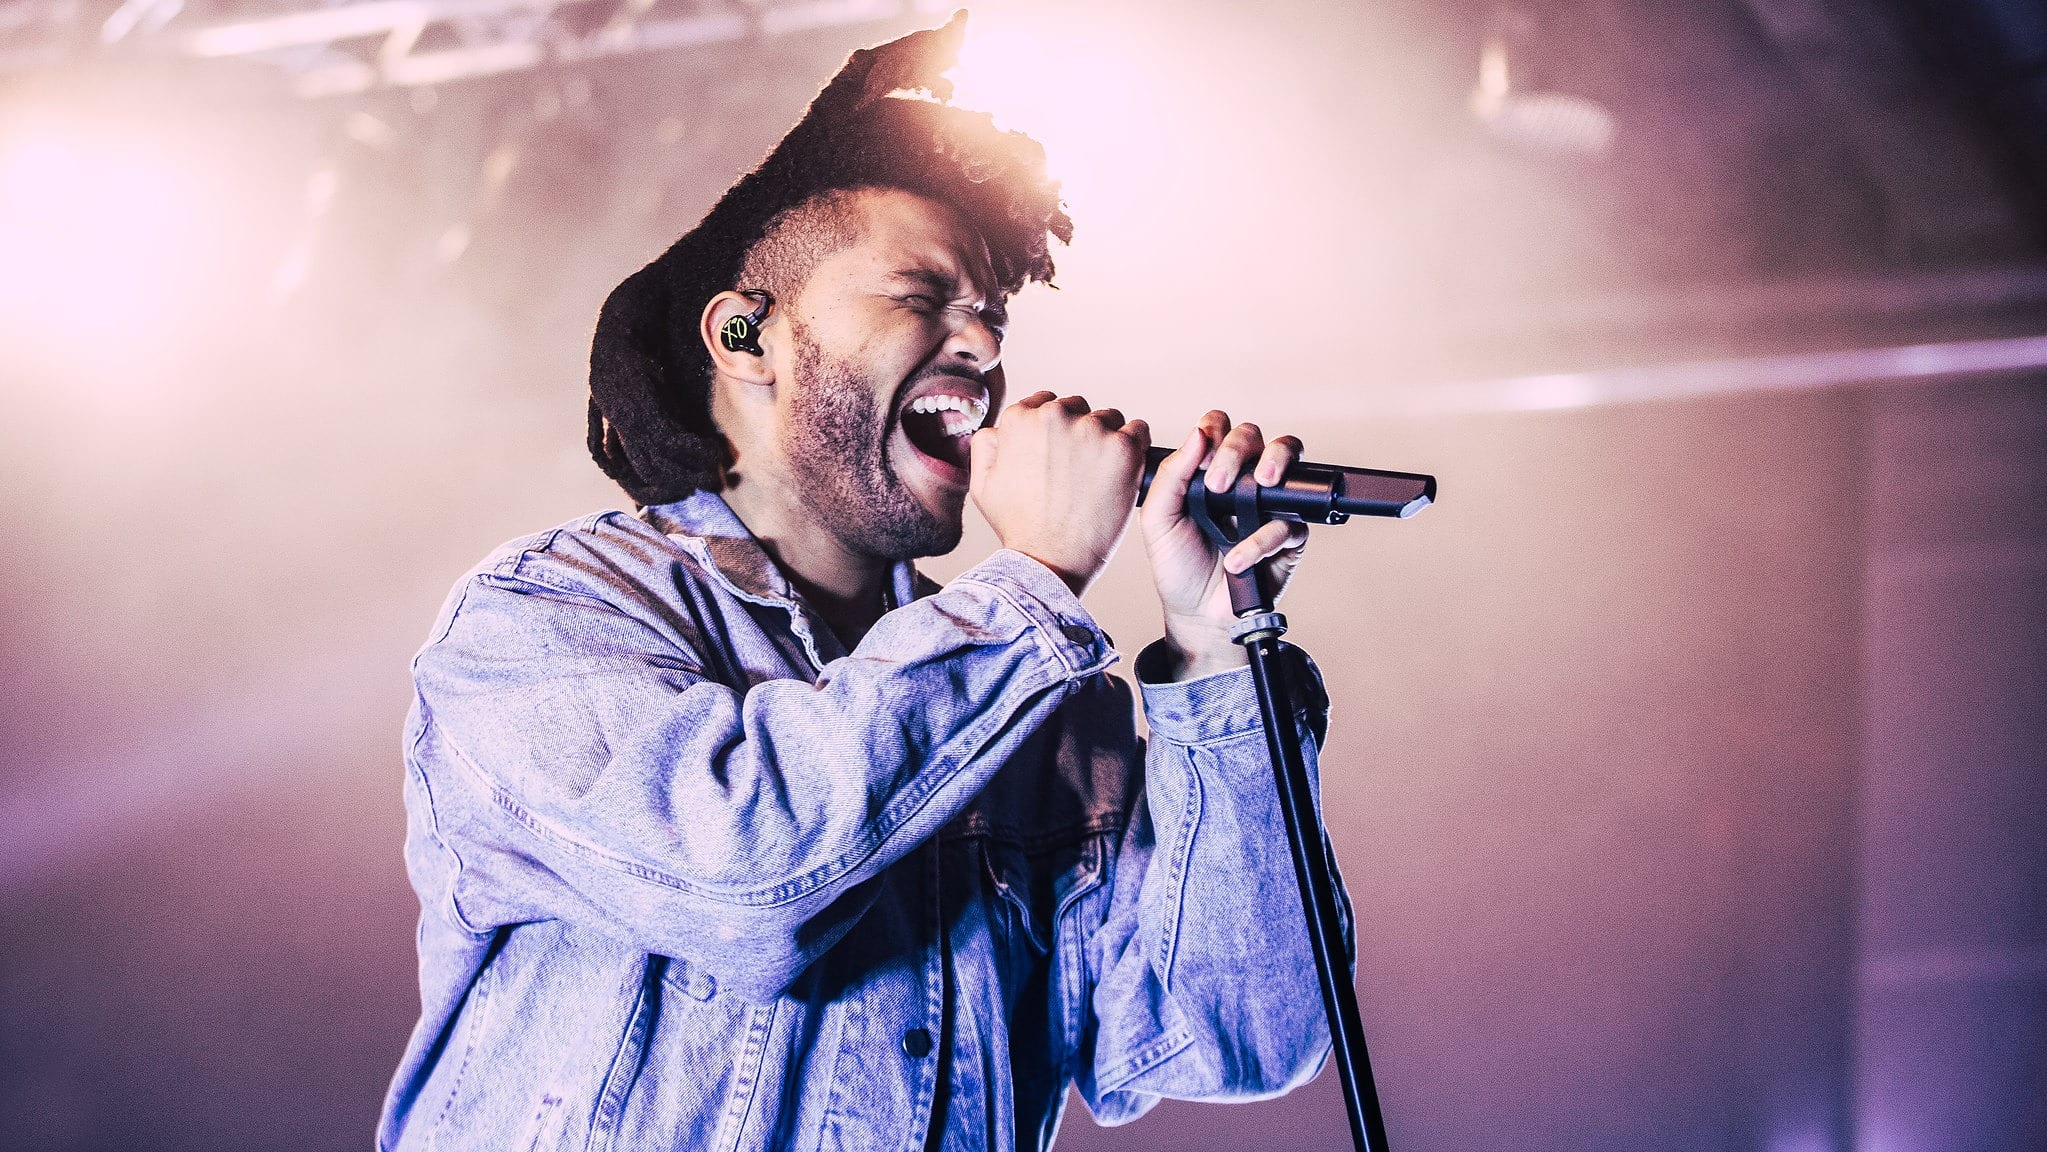 The Weeknd streaming statistics